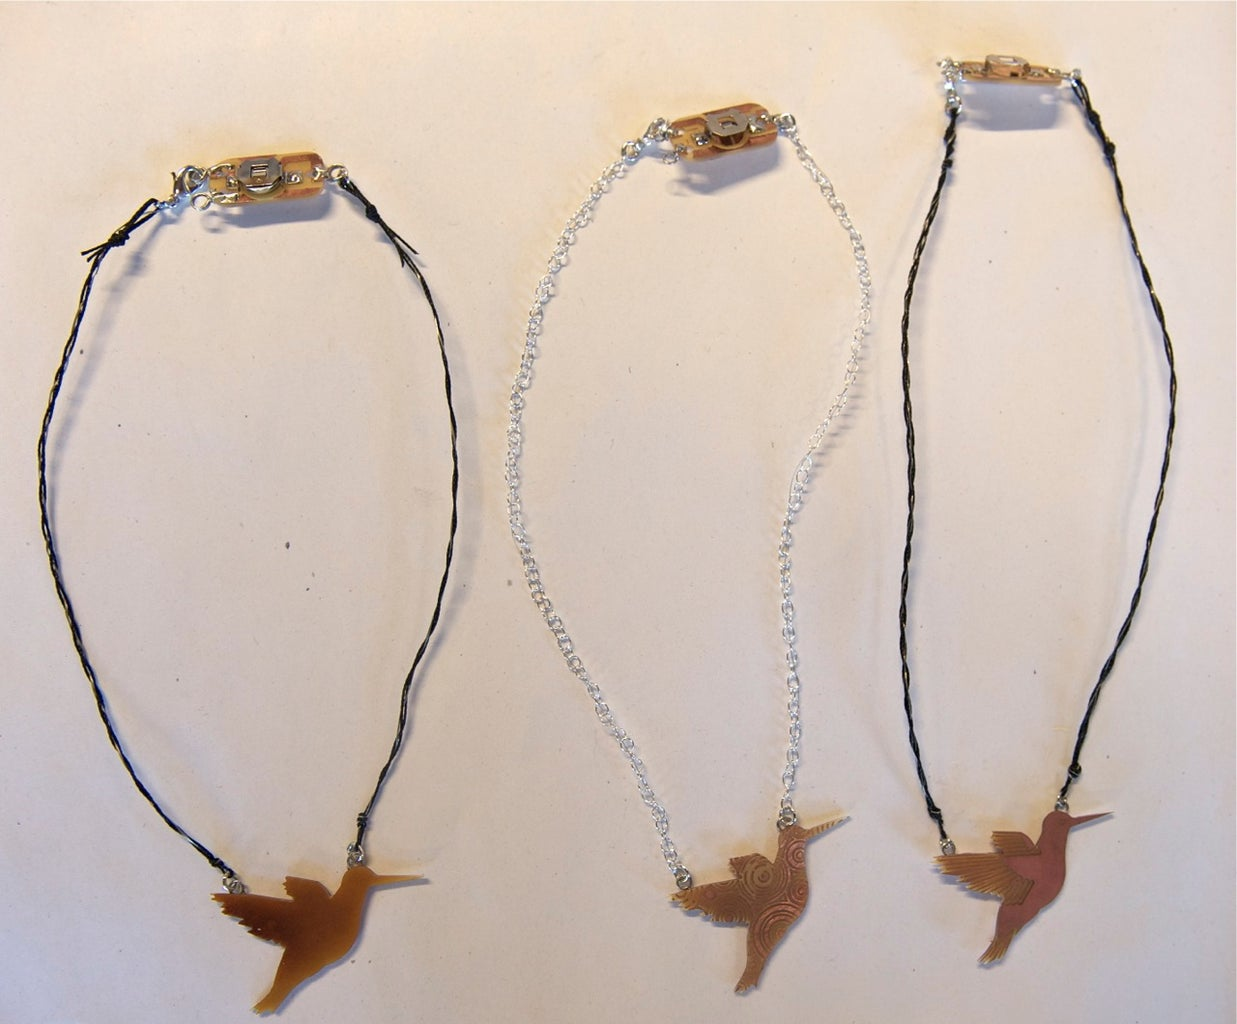 Complete the Necklace